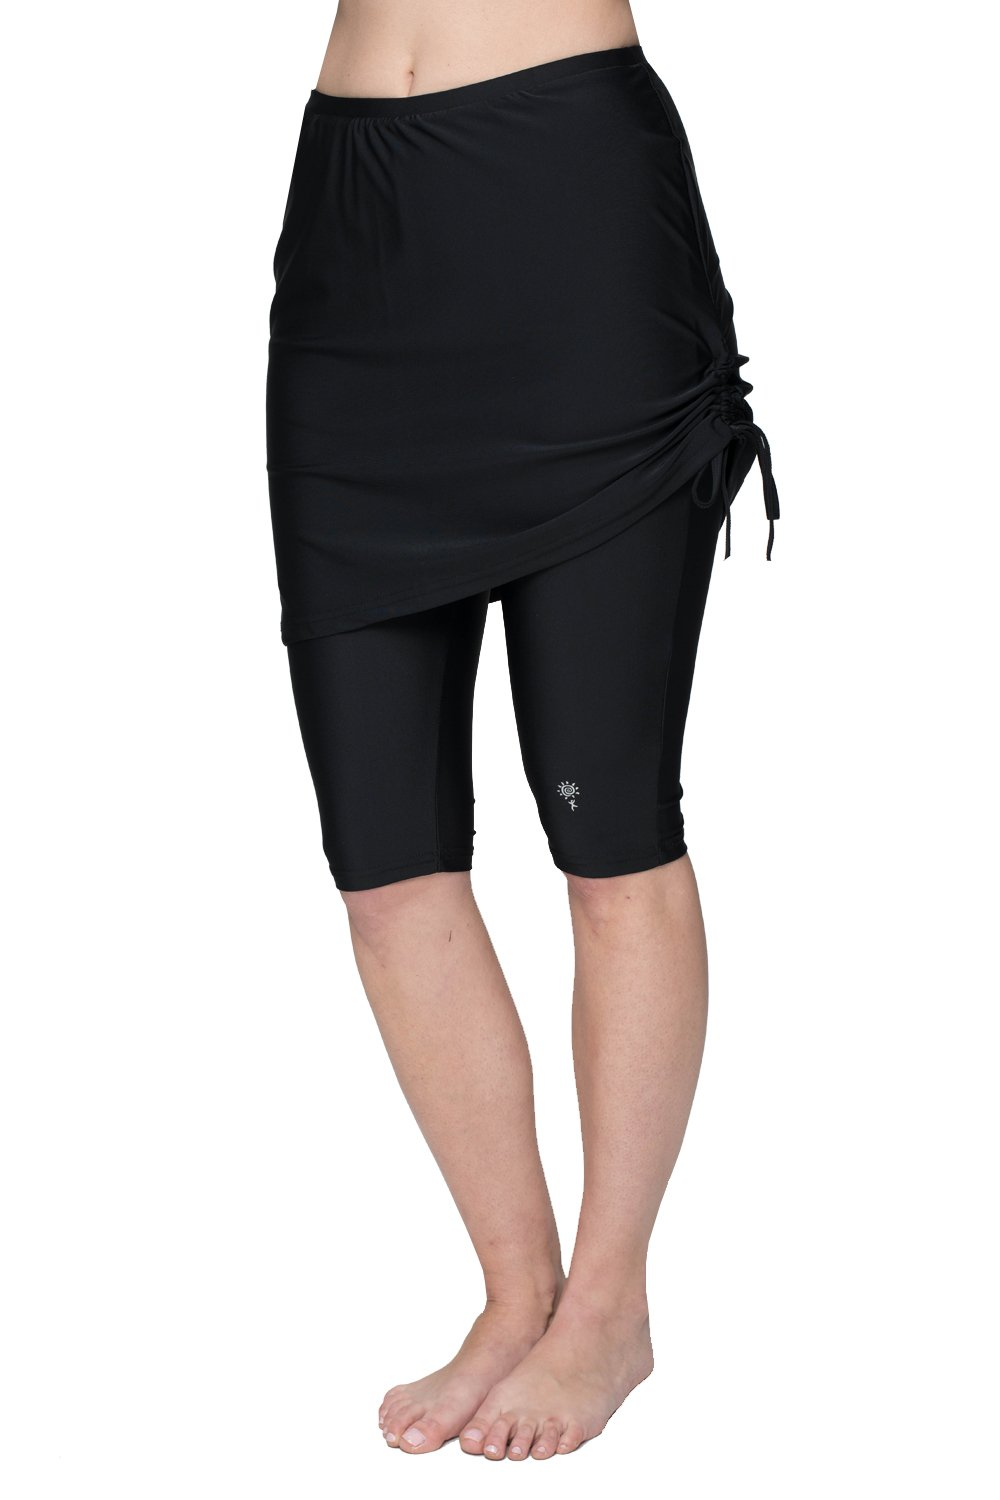 HydroChic Women's Plus Size Swim Skirt – Modest Swimsuit Great for Swimming, Sports and Water Exercise – Black, 0X